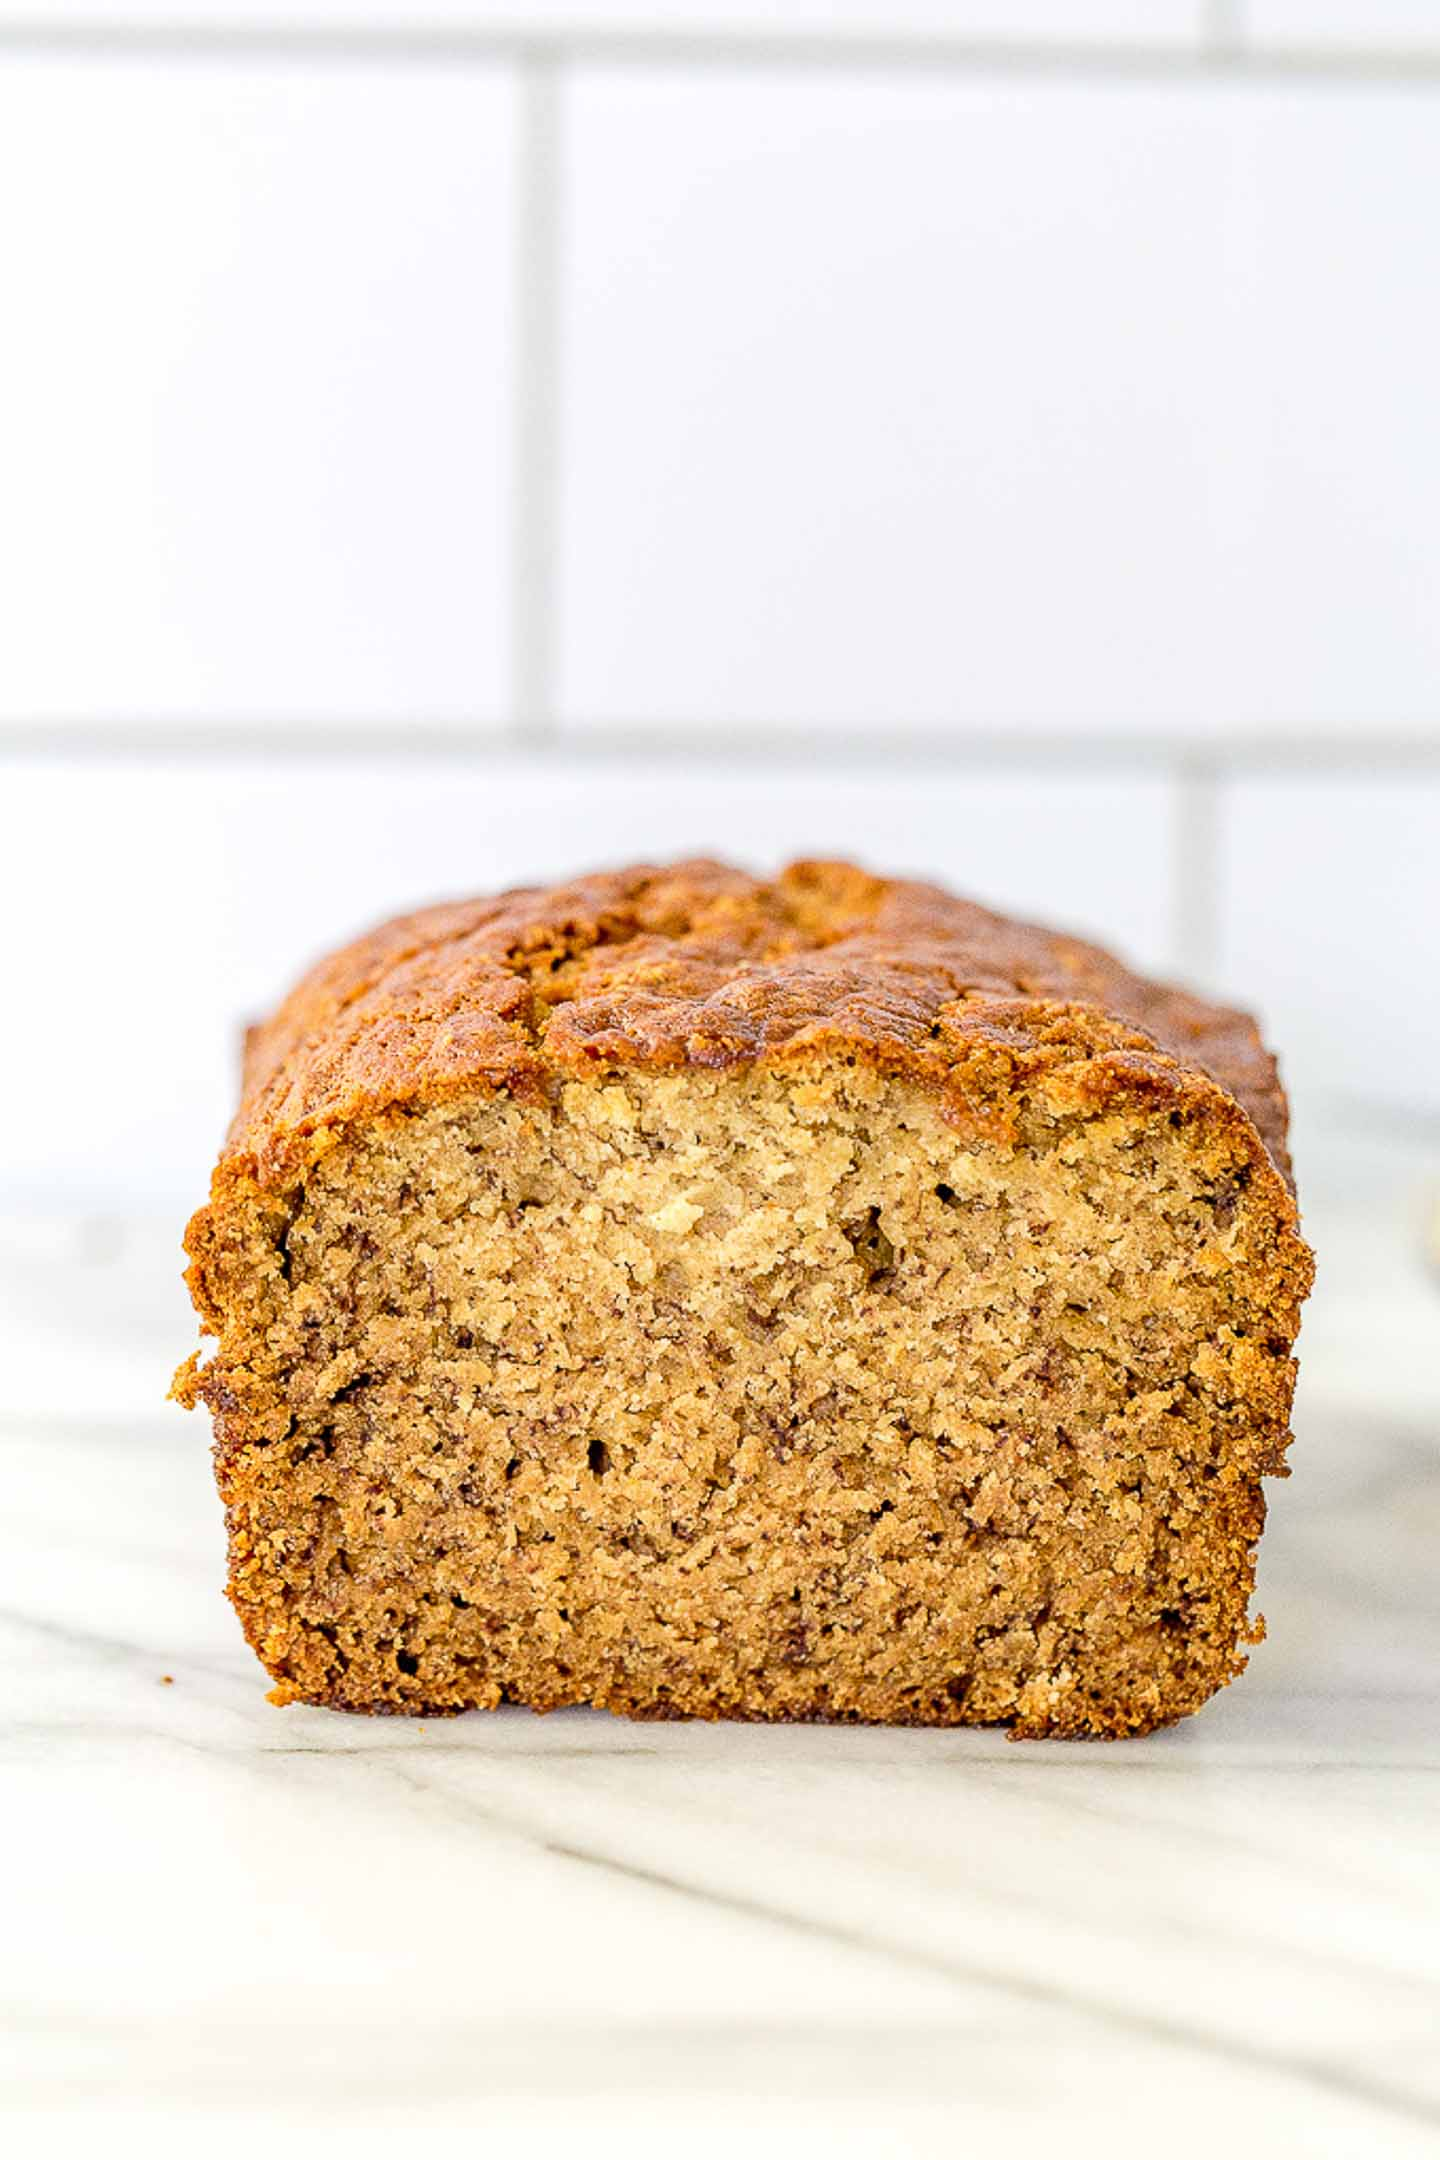 a loaf of banana bread with a slice cut out.